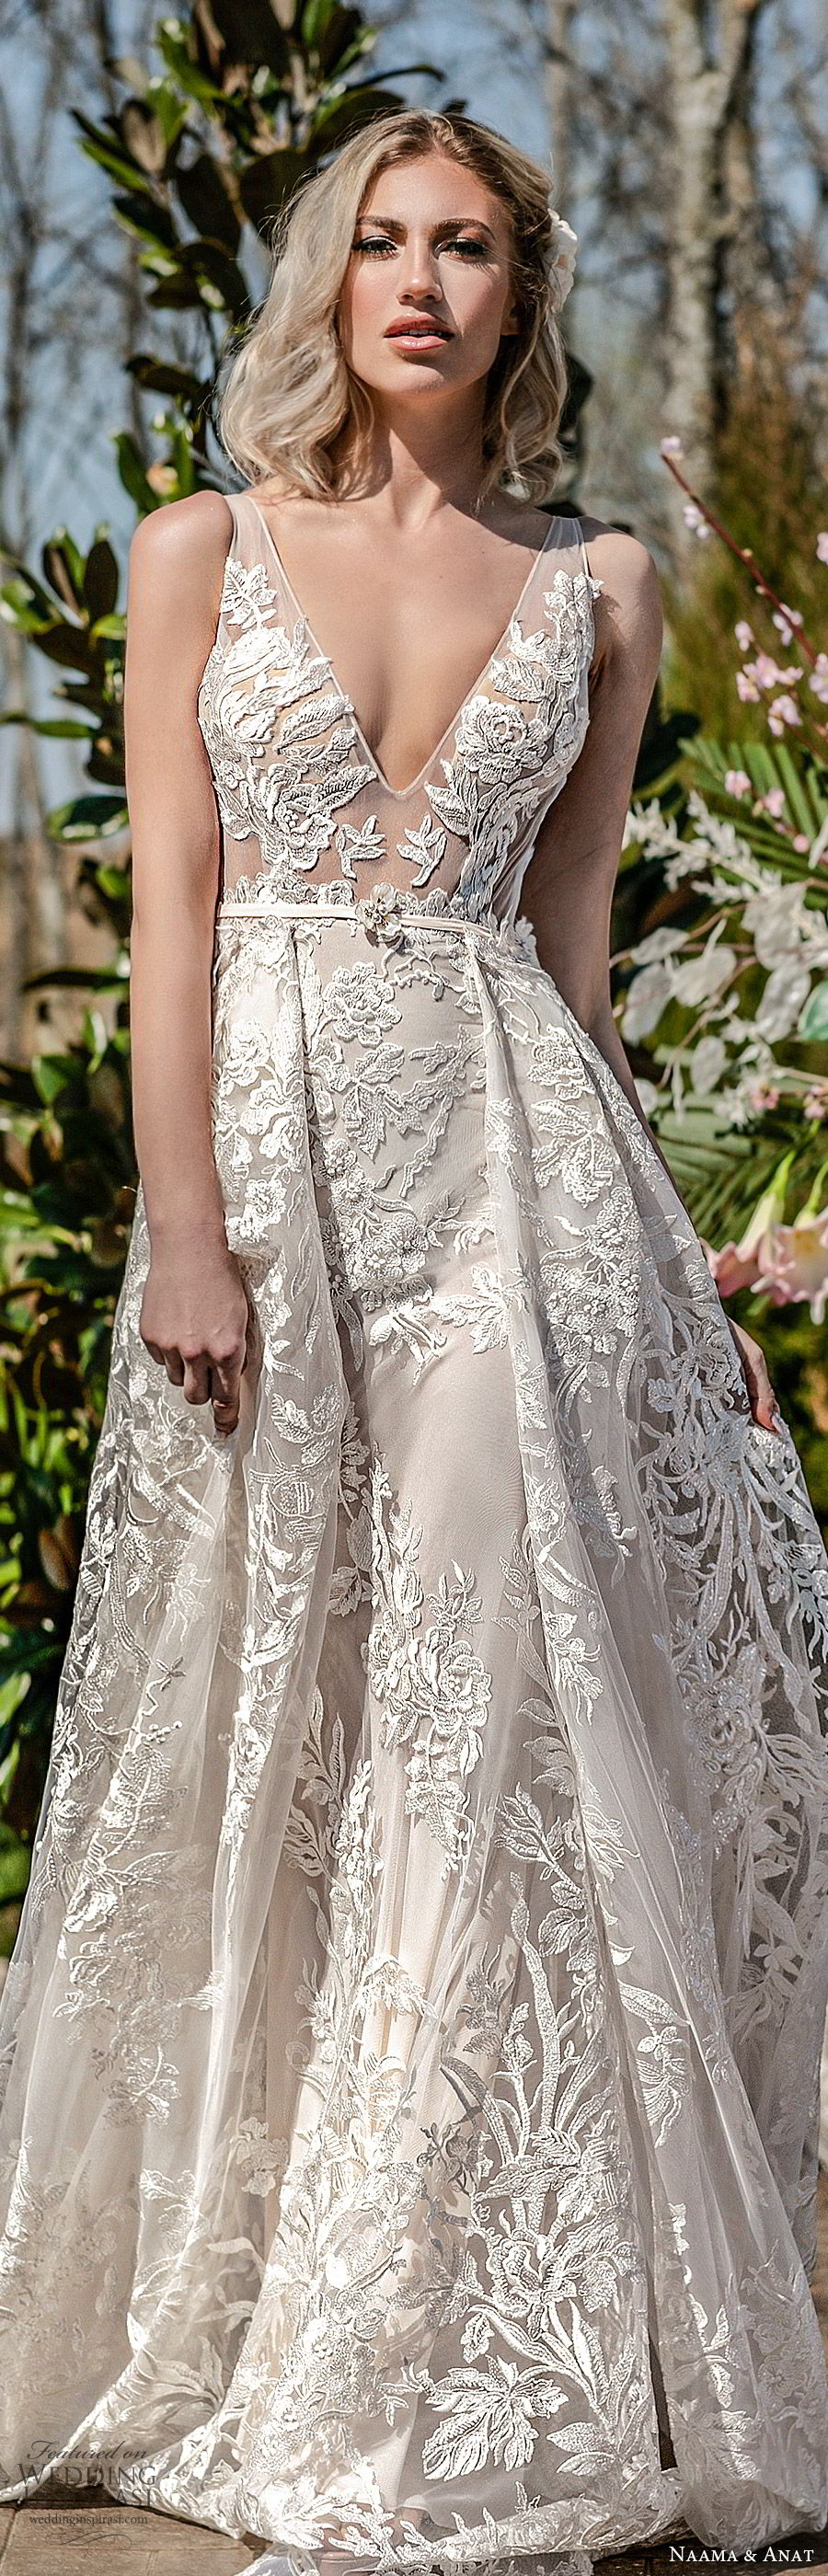 naama anat spring 2020 bridal sleeveless sheer straps deep v neckline illusion bodice fully embellished lace a line ball gown wedding dress (5) low back chapel train princess romantic lv